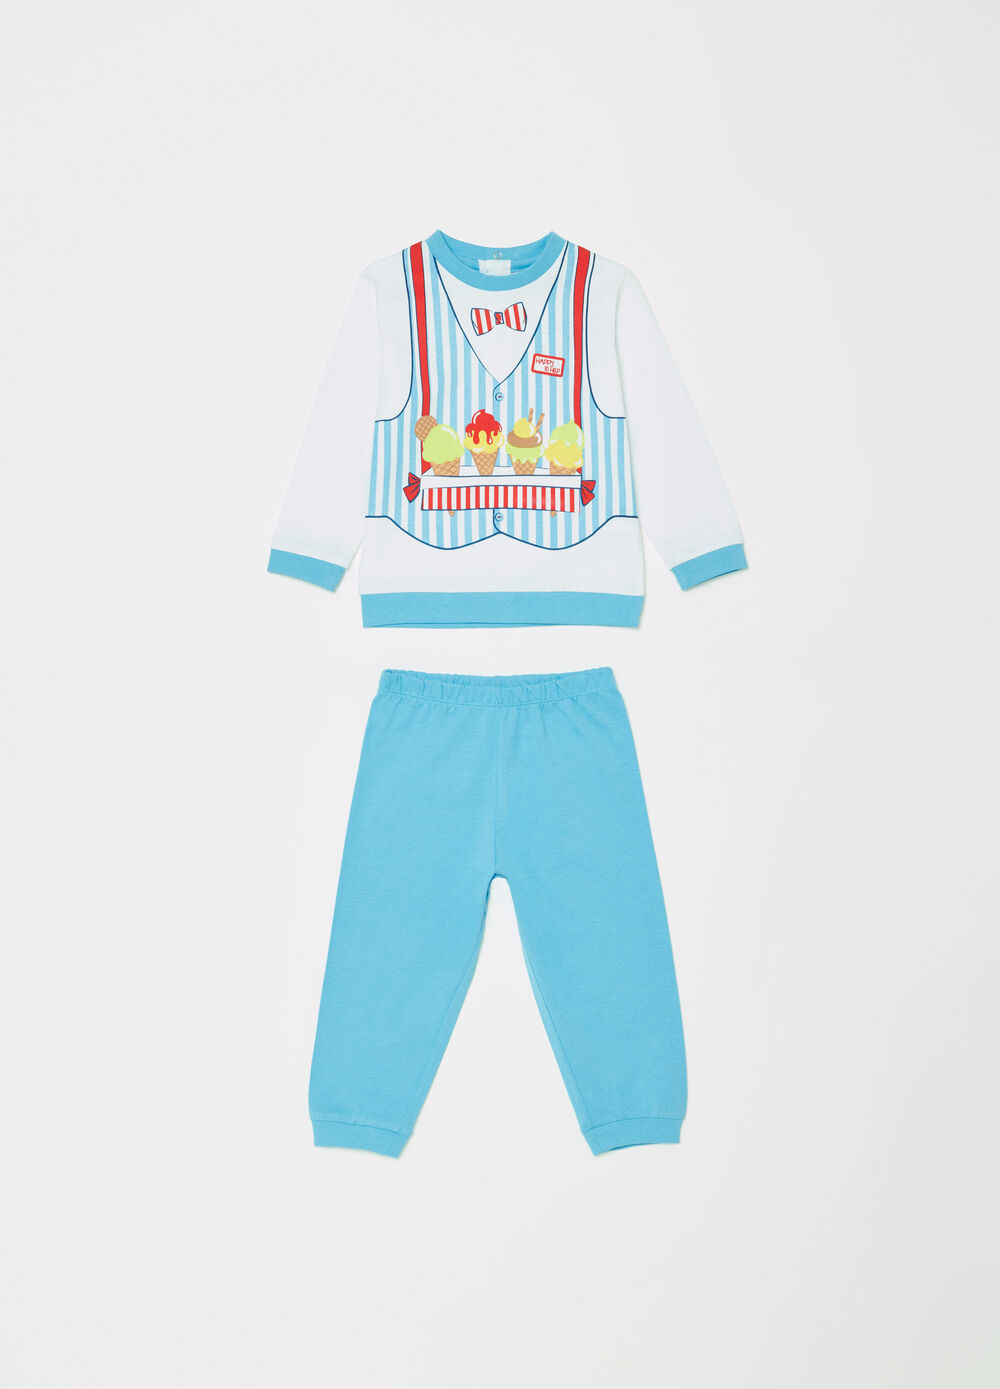 100% cotton pyjamas with ice creams